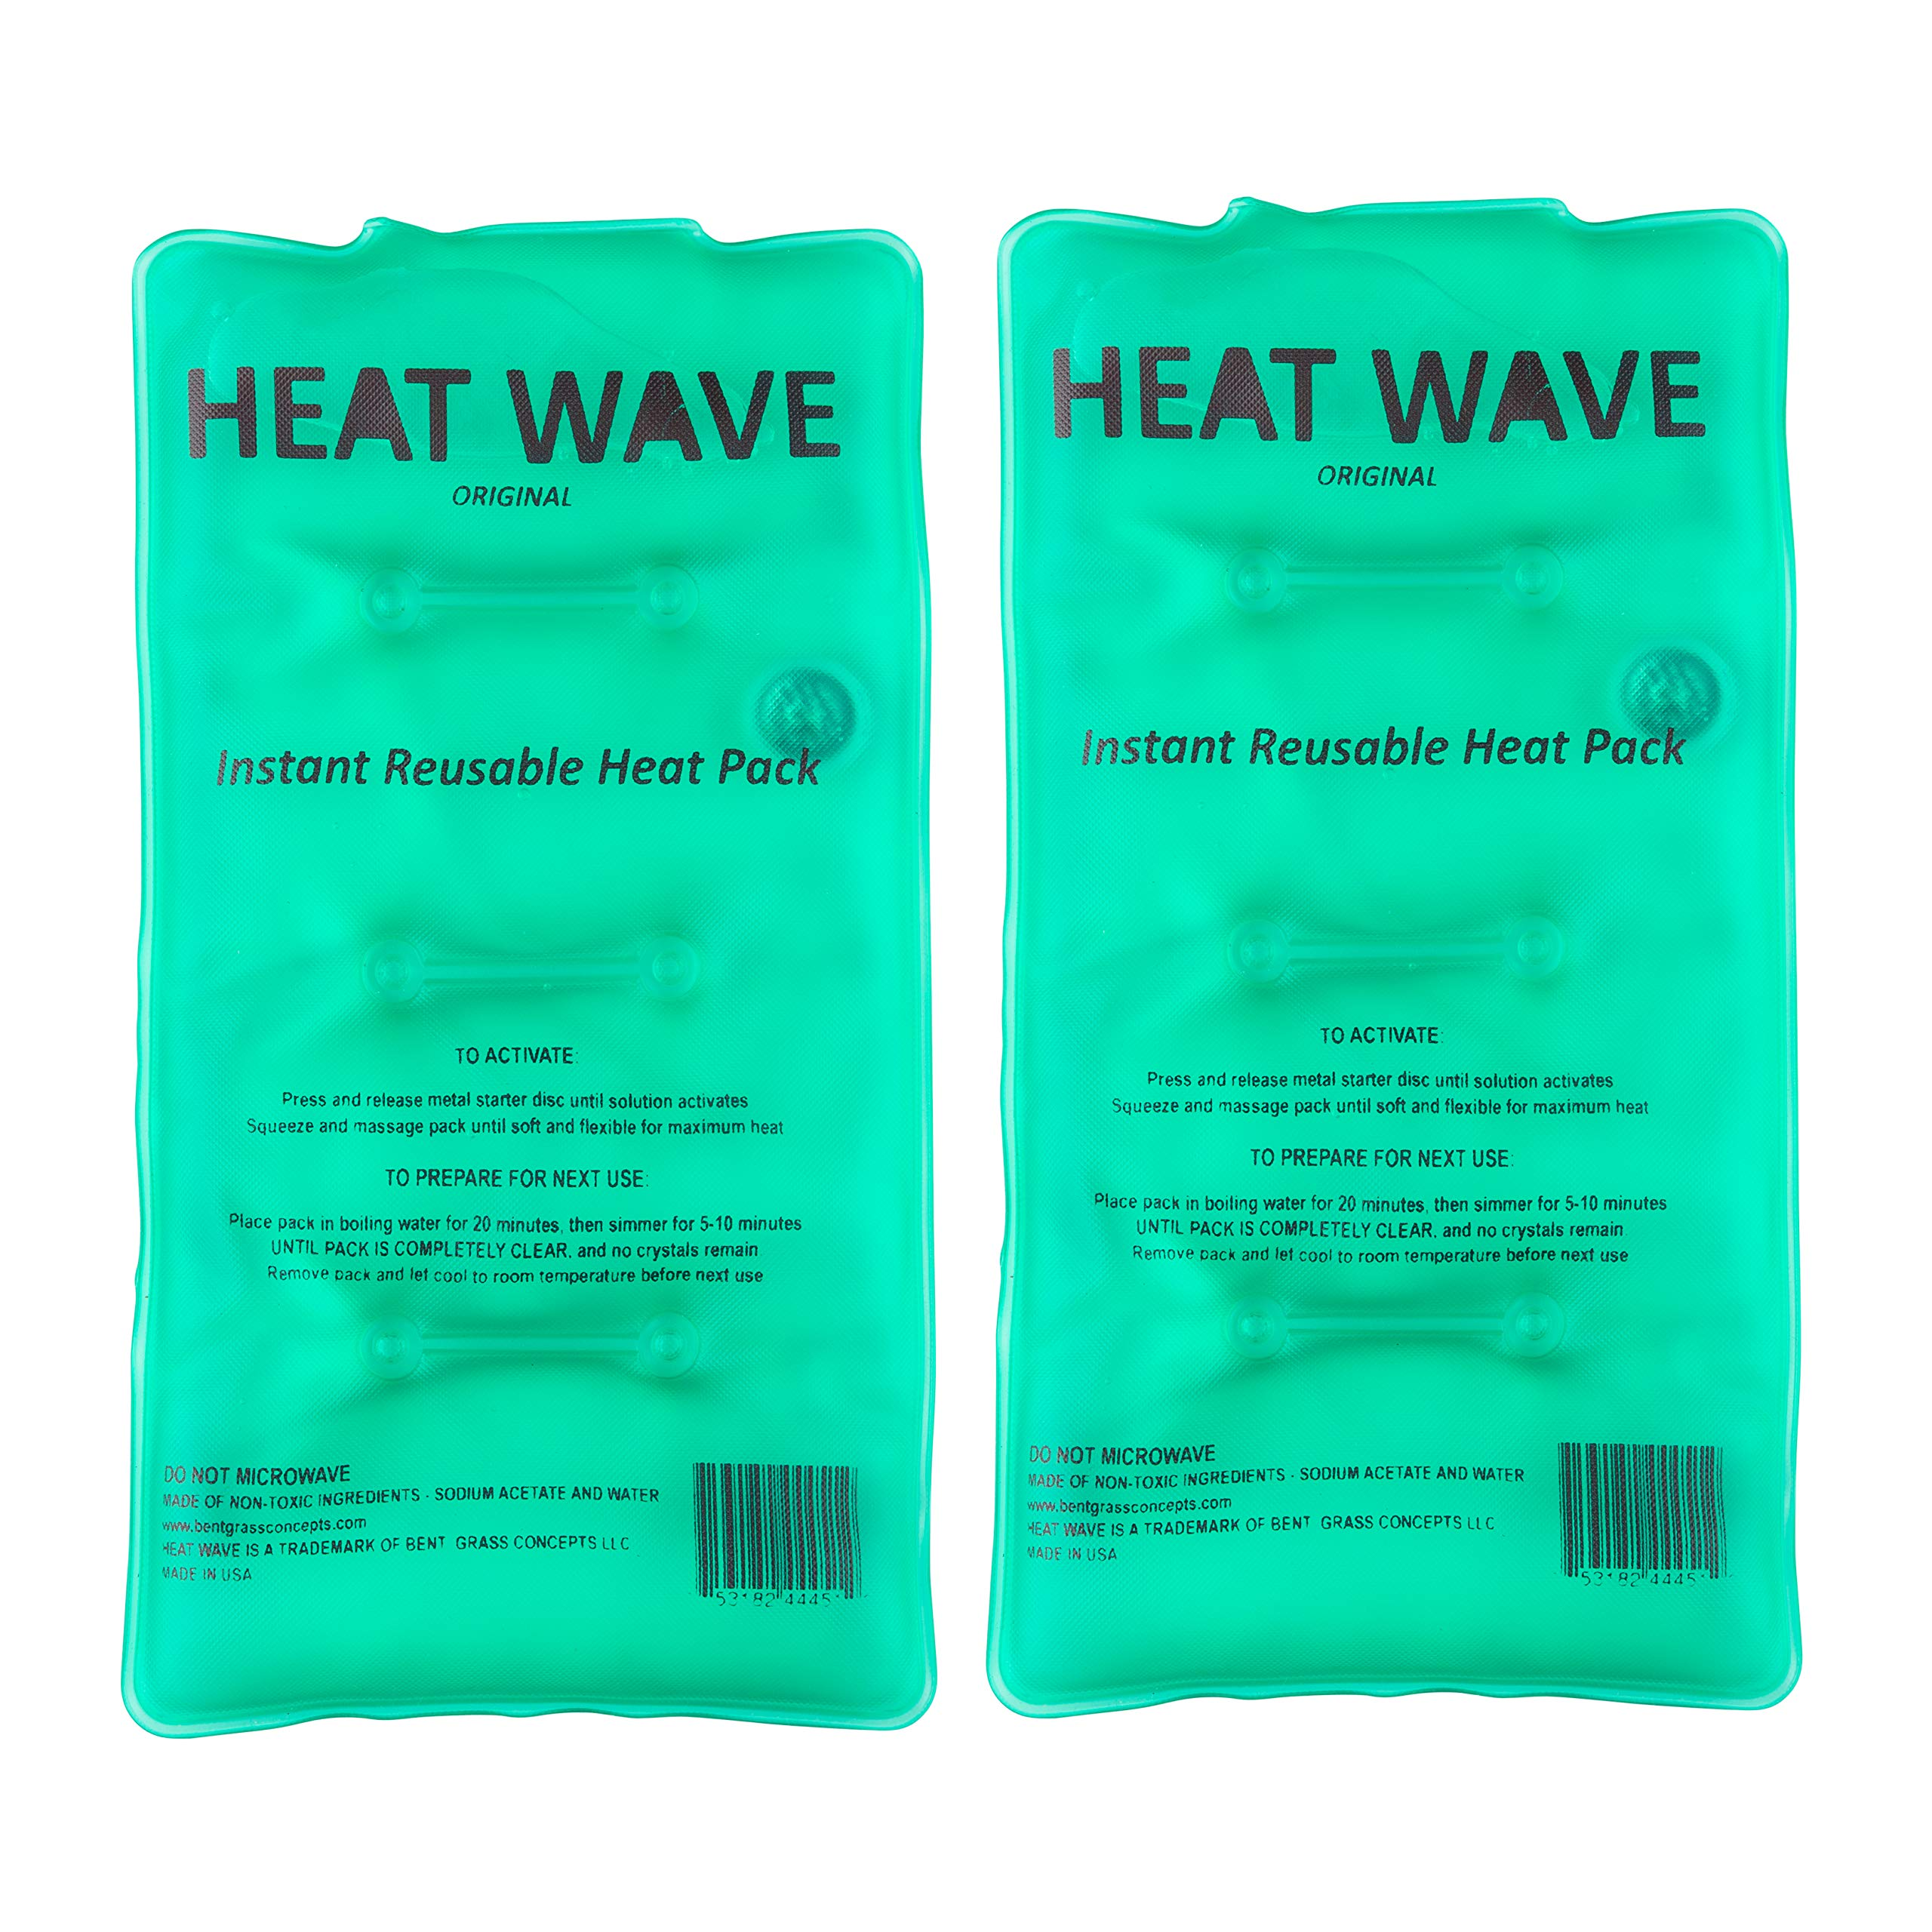 HEAT WAVE Instant Reusable Heat Packs - 2 Medium (5x9''), Reusable Heat Pack for Muscle Aches, Back Pain, Pain Relief, Click Heat - Made in USA by Heat Wave